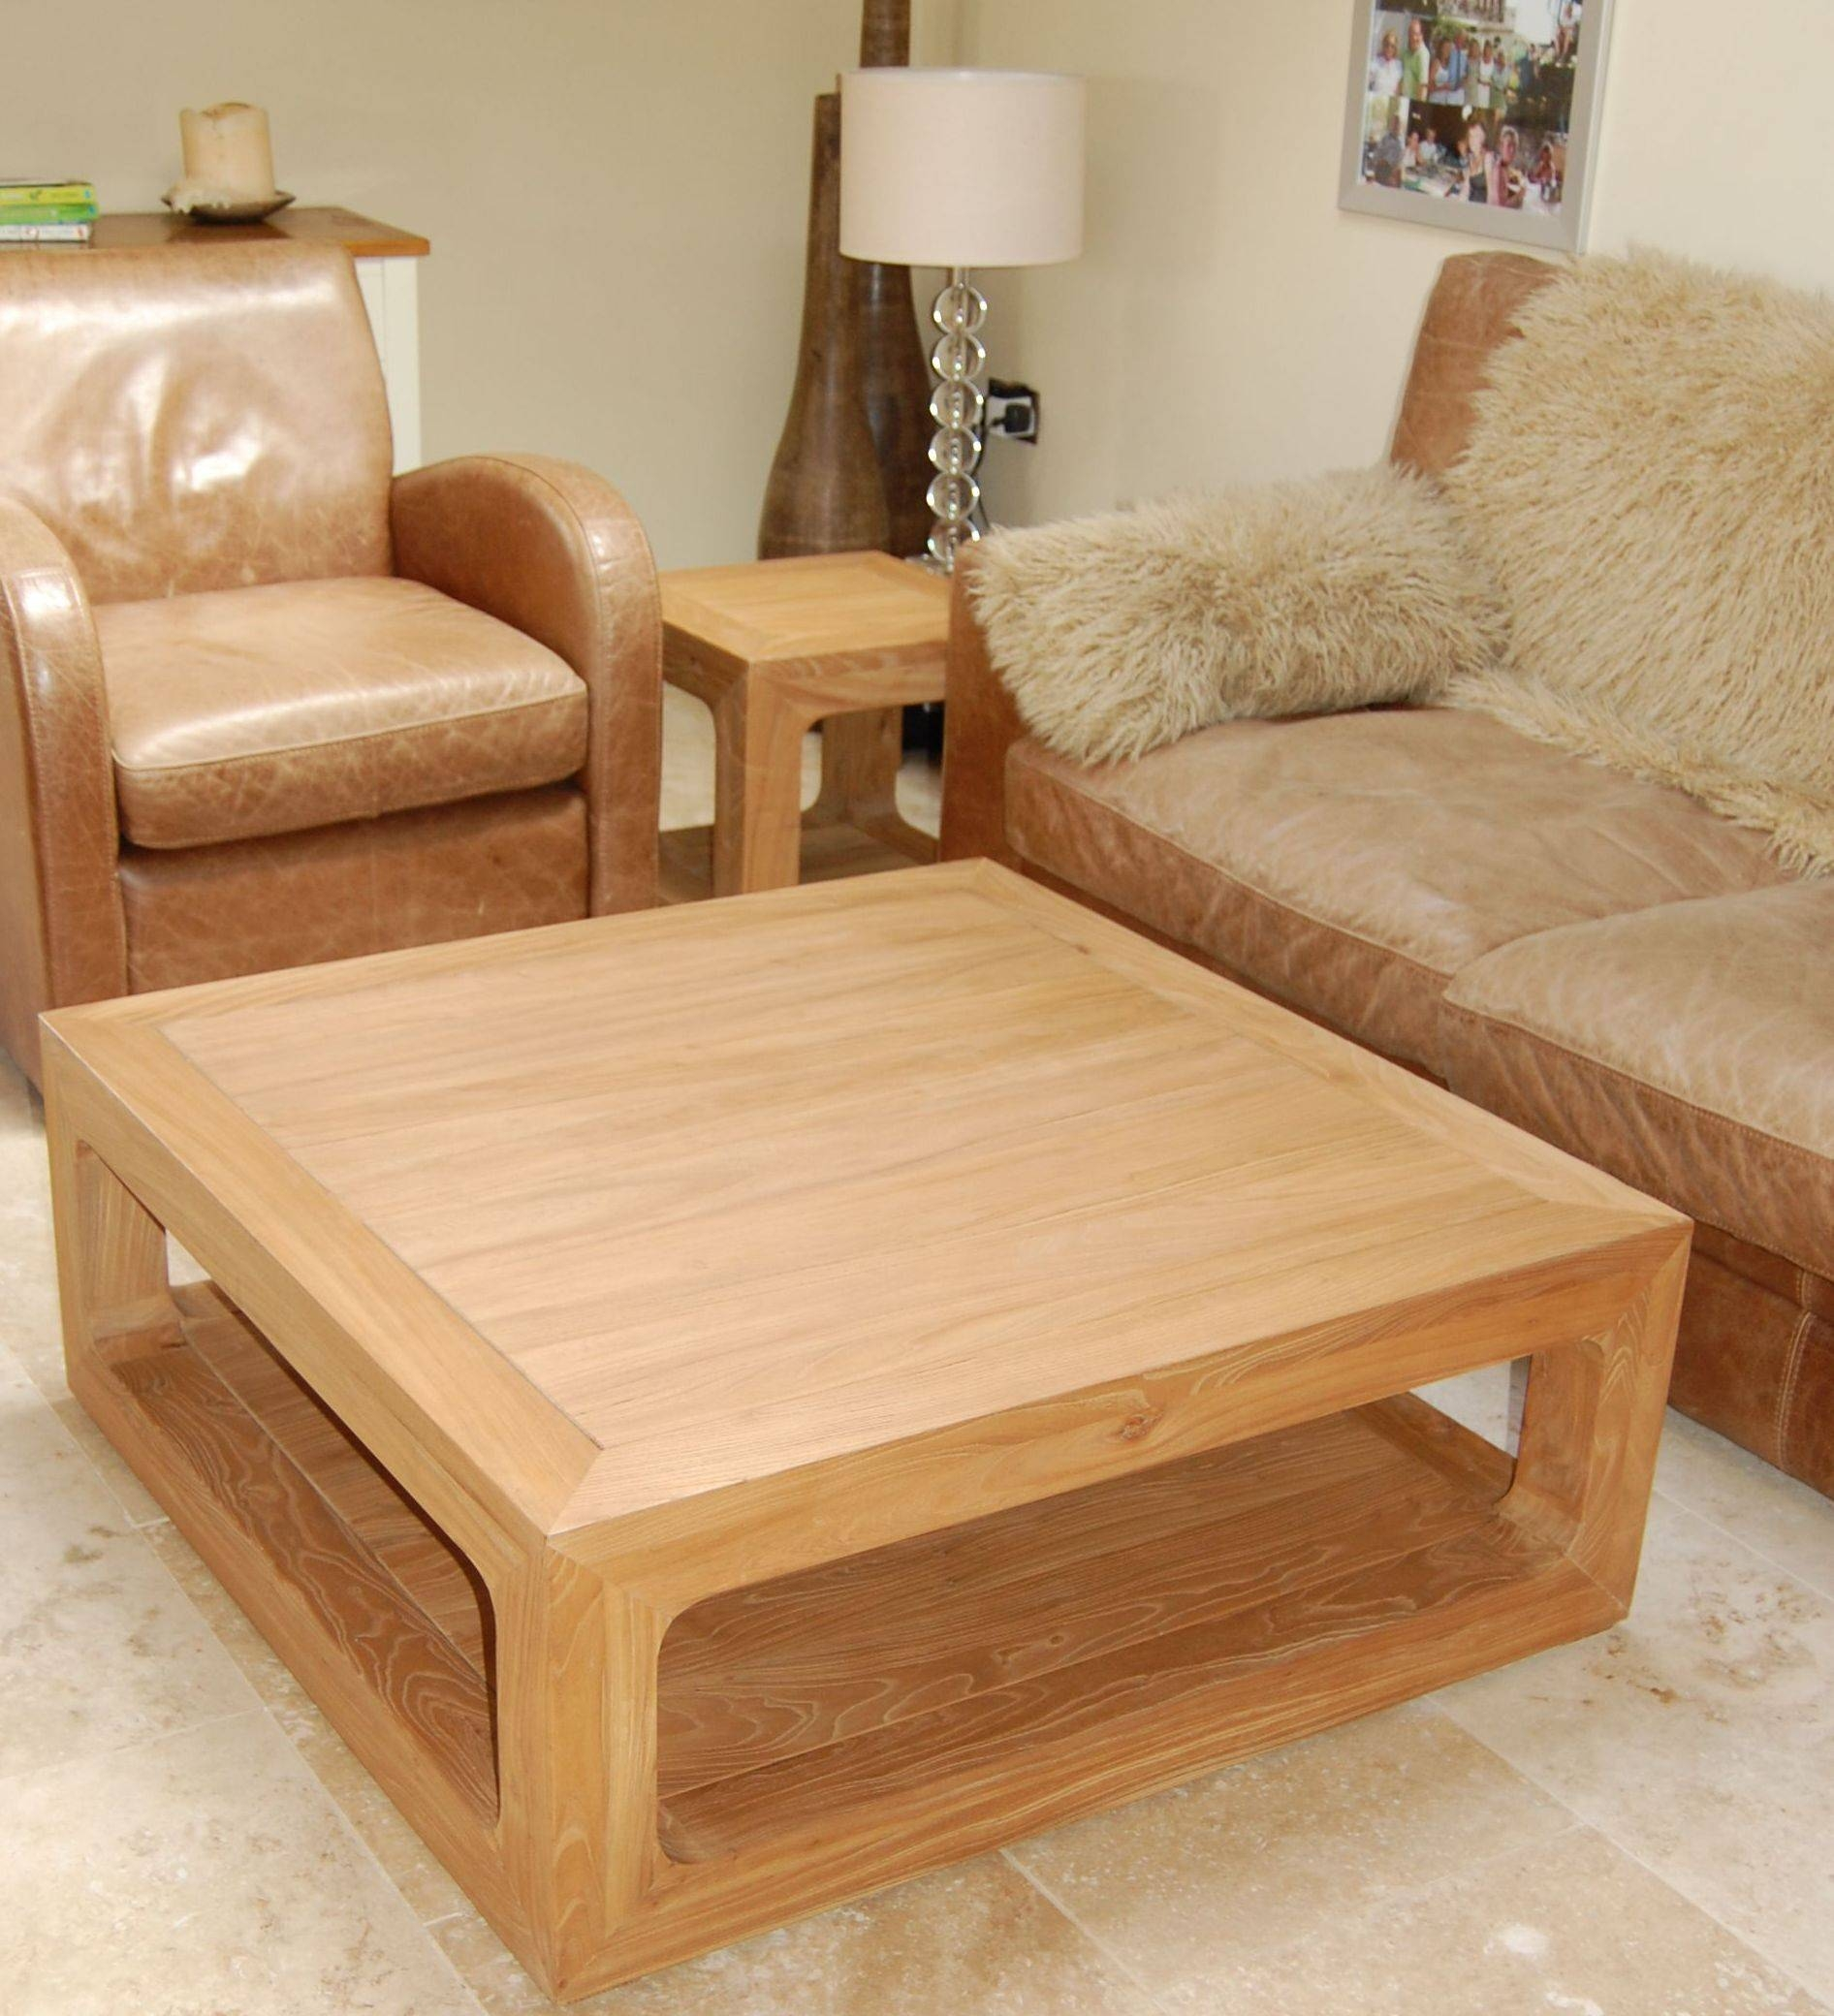 Wooden Coffee Tables ~ Bacill within Coffee Tables With Rounded Corners (Image 29 of 30)